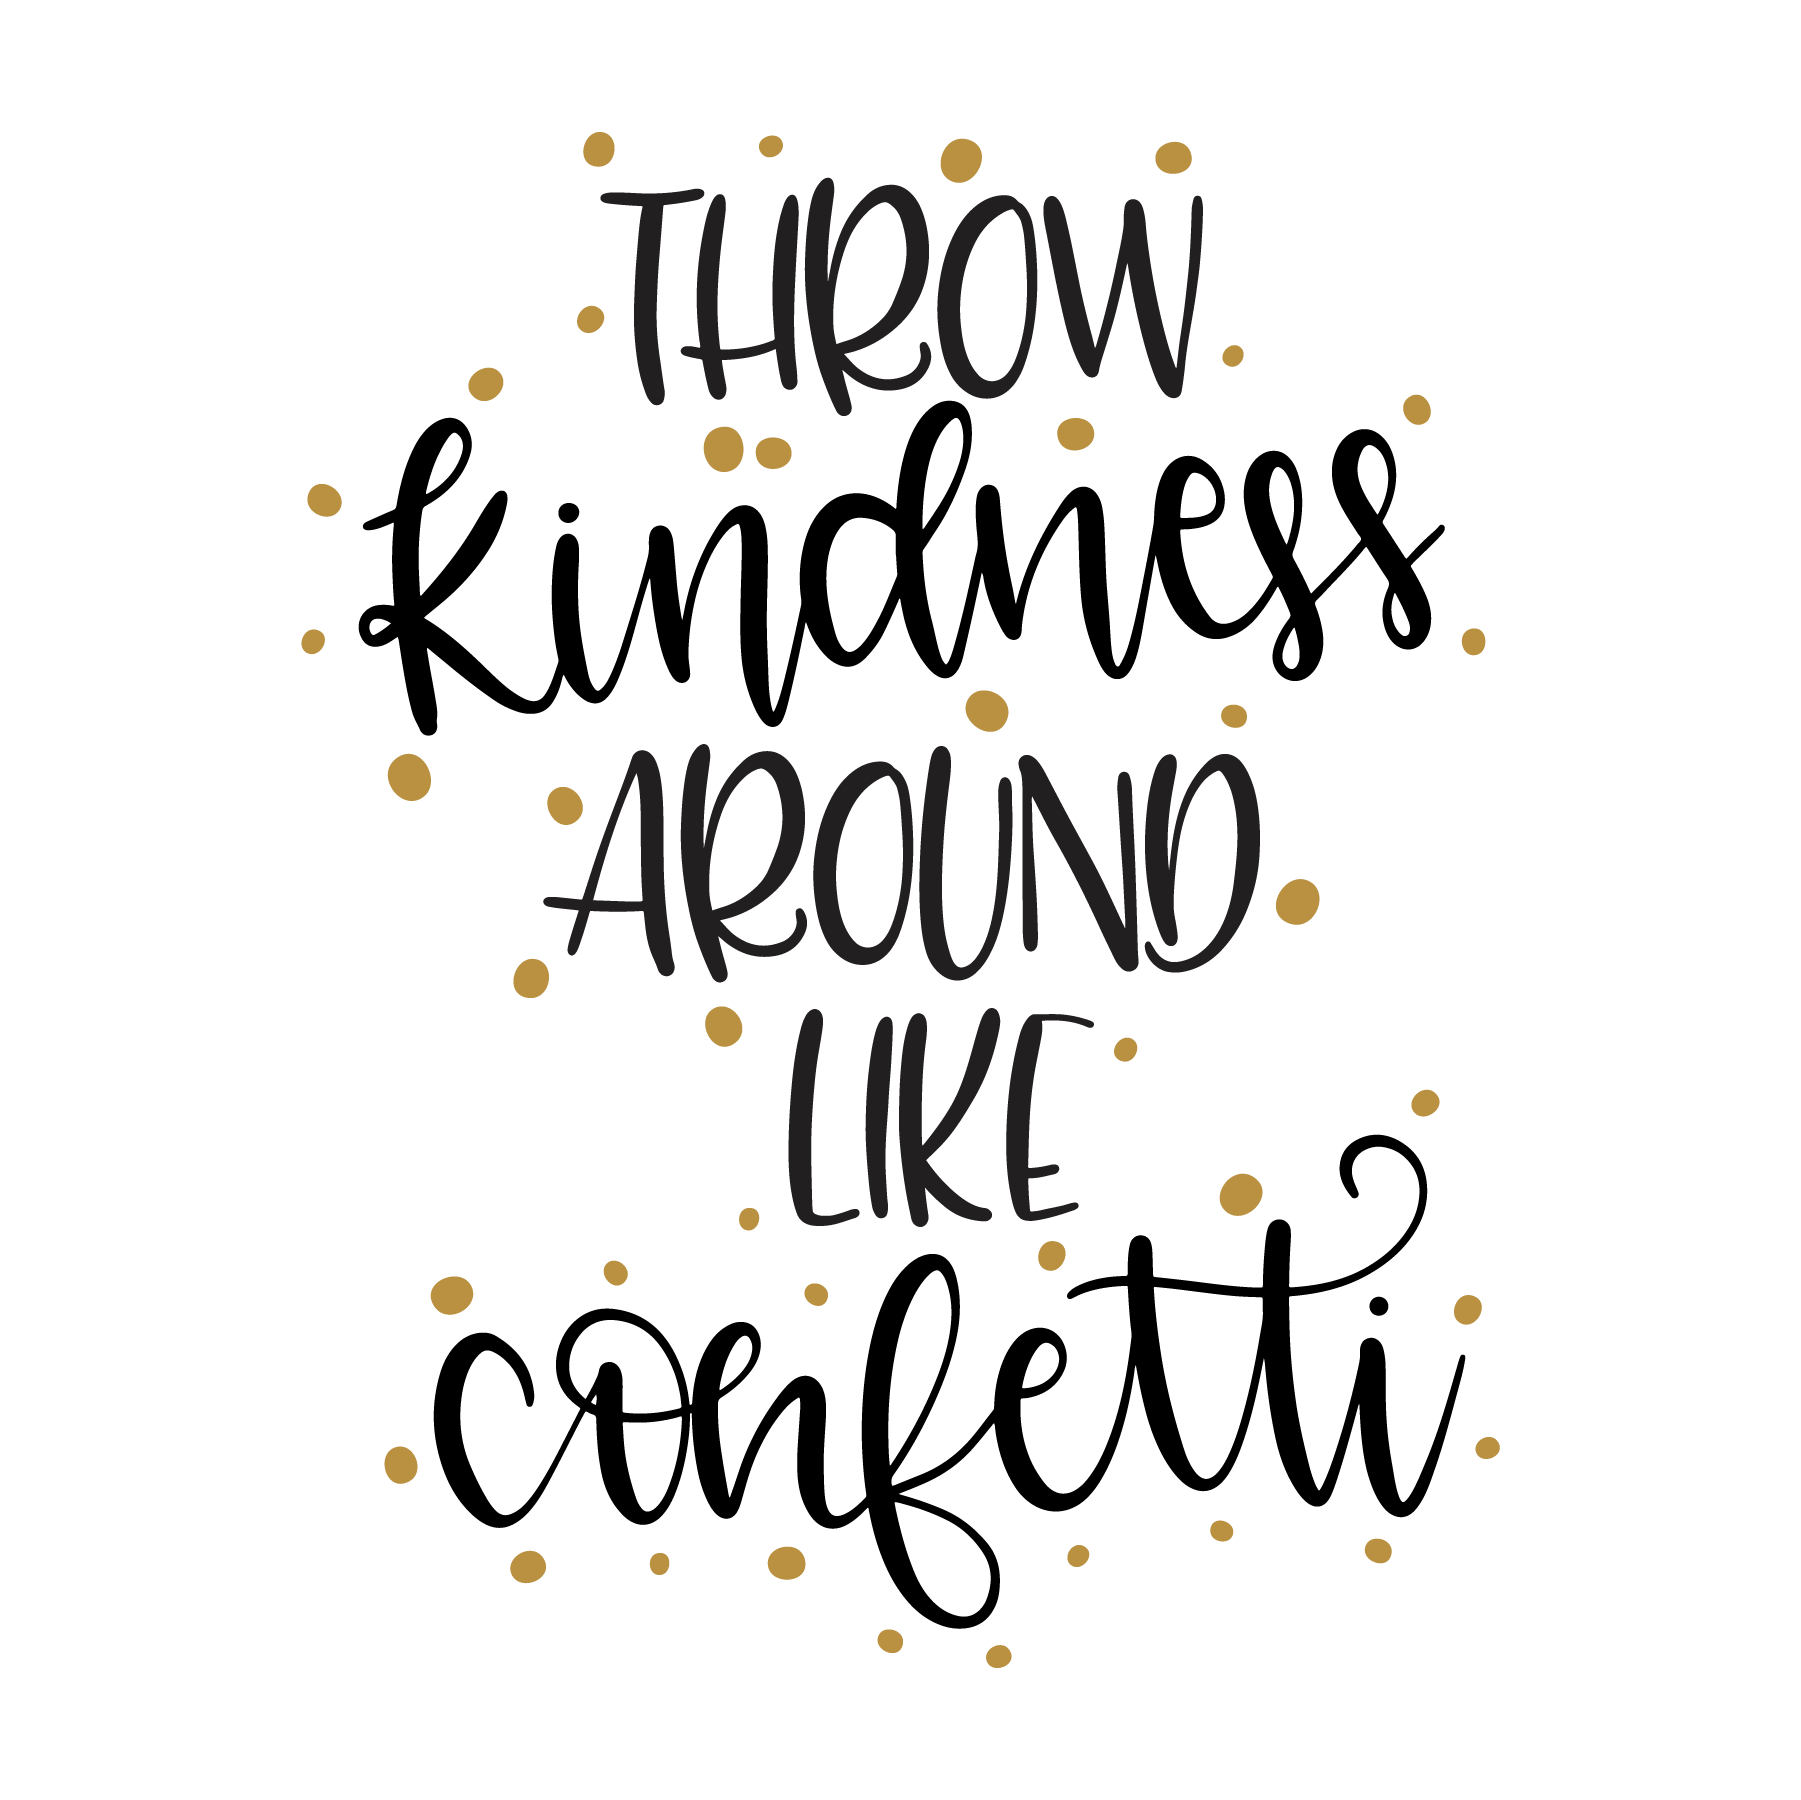 Drawing quote marwa. Pin by marga d